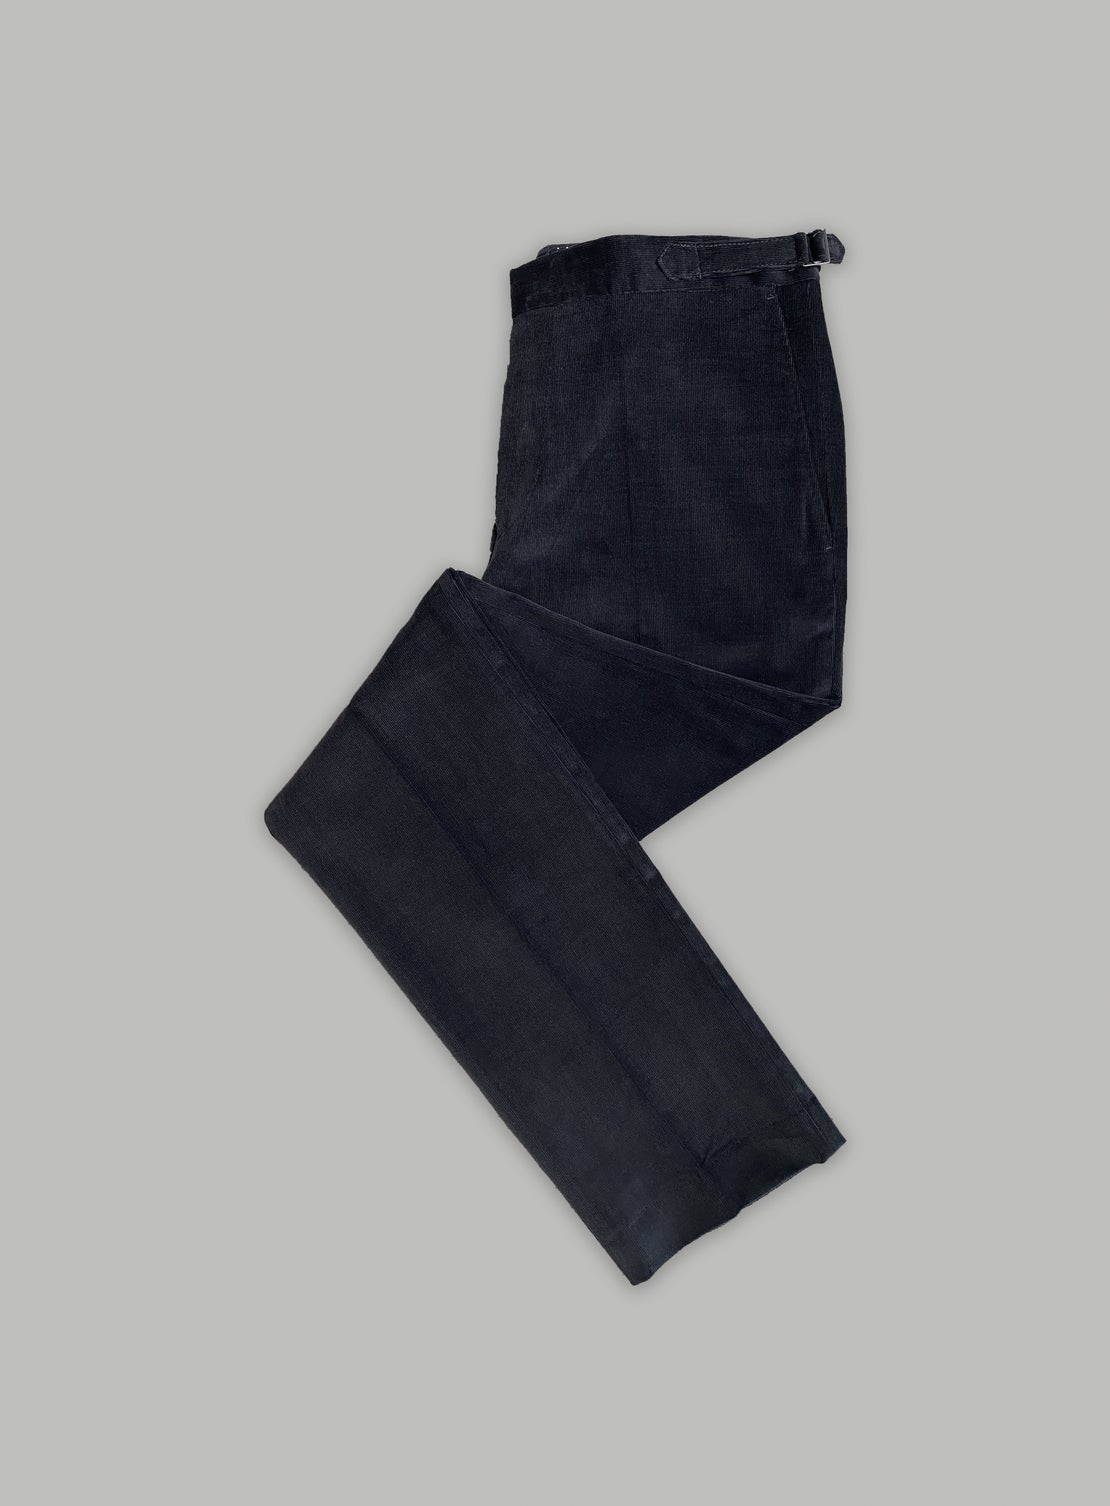 Navy Cord Separates Trouser